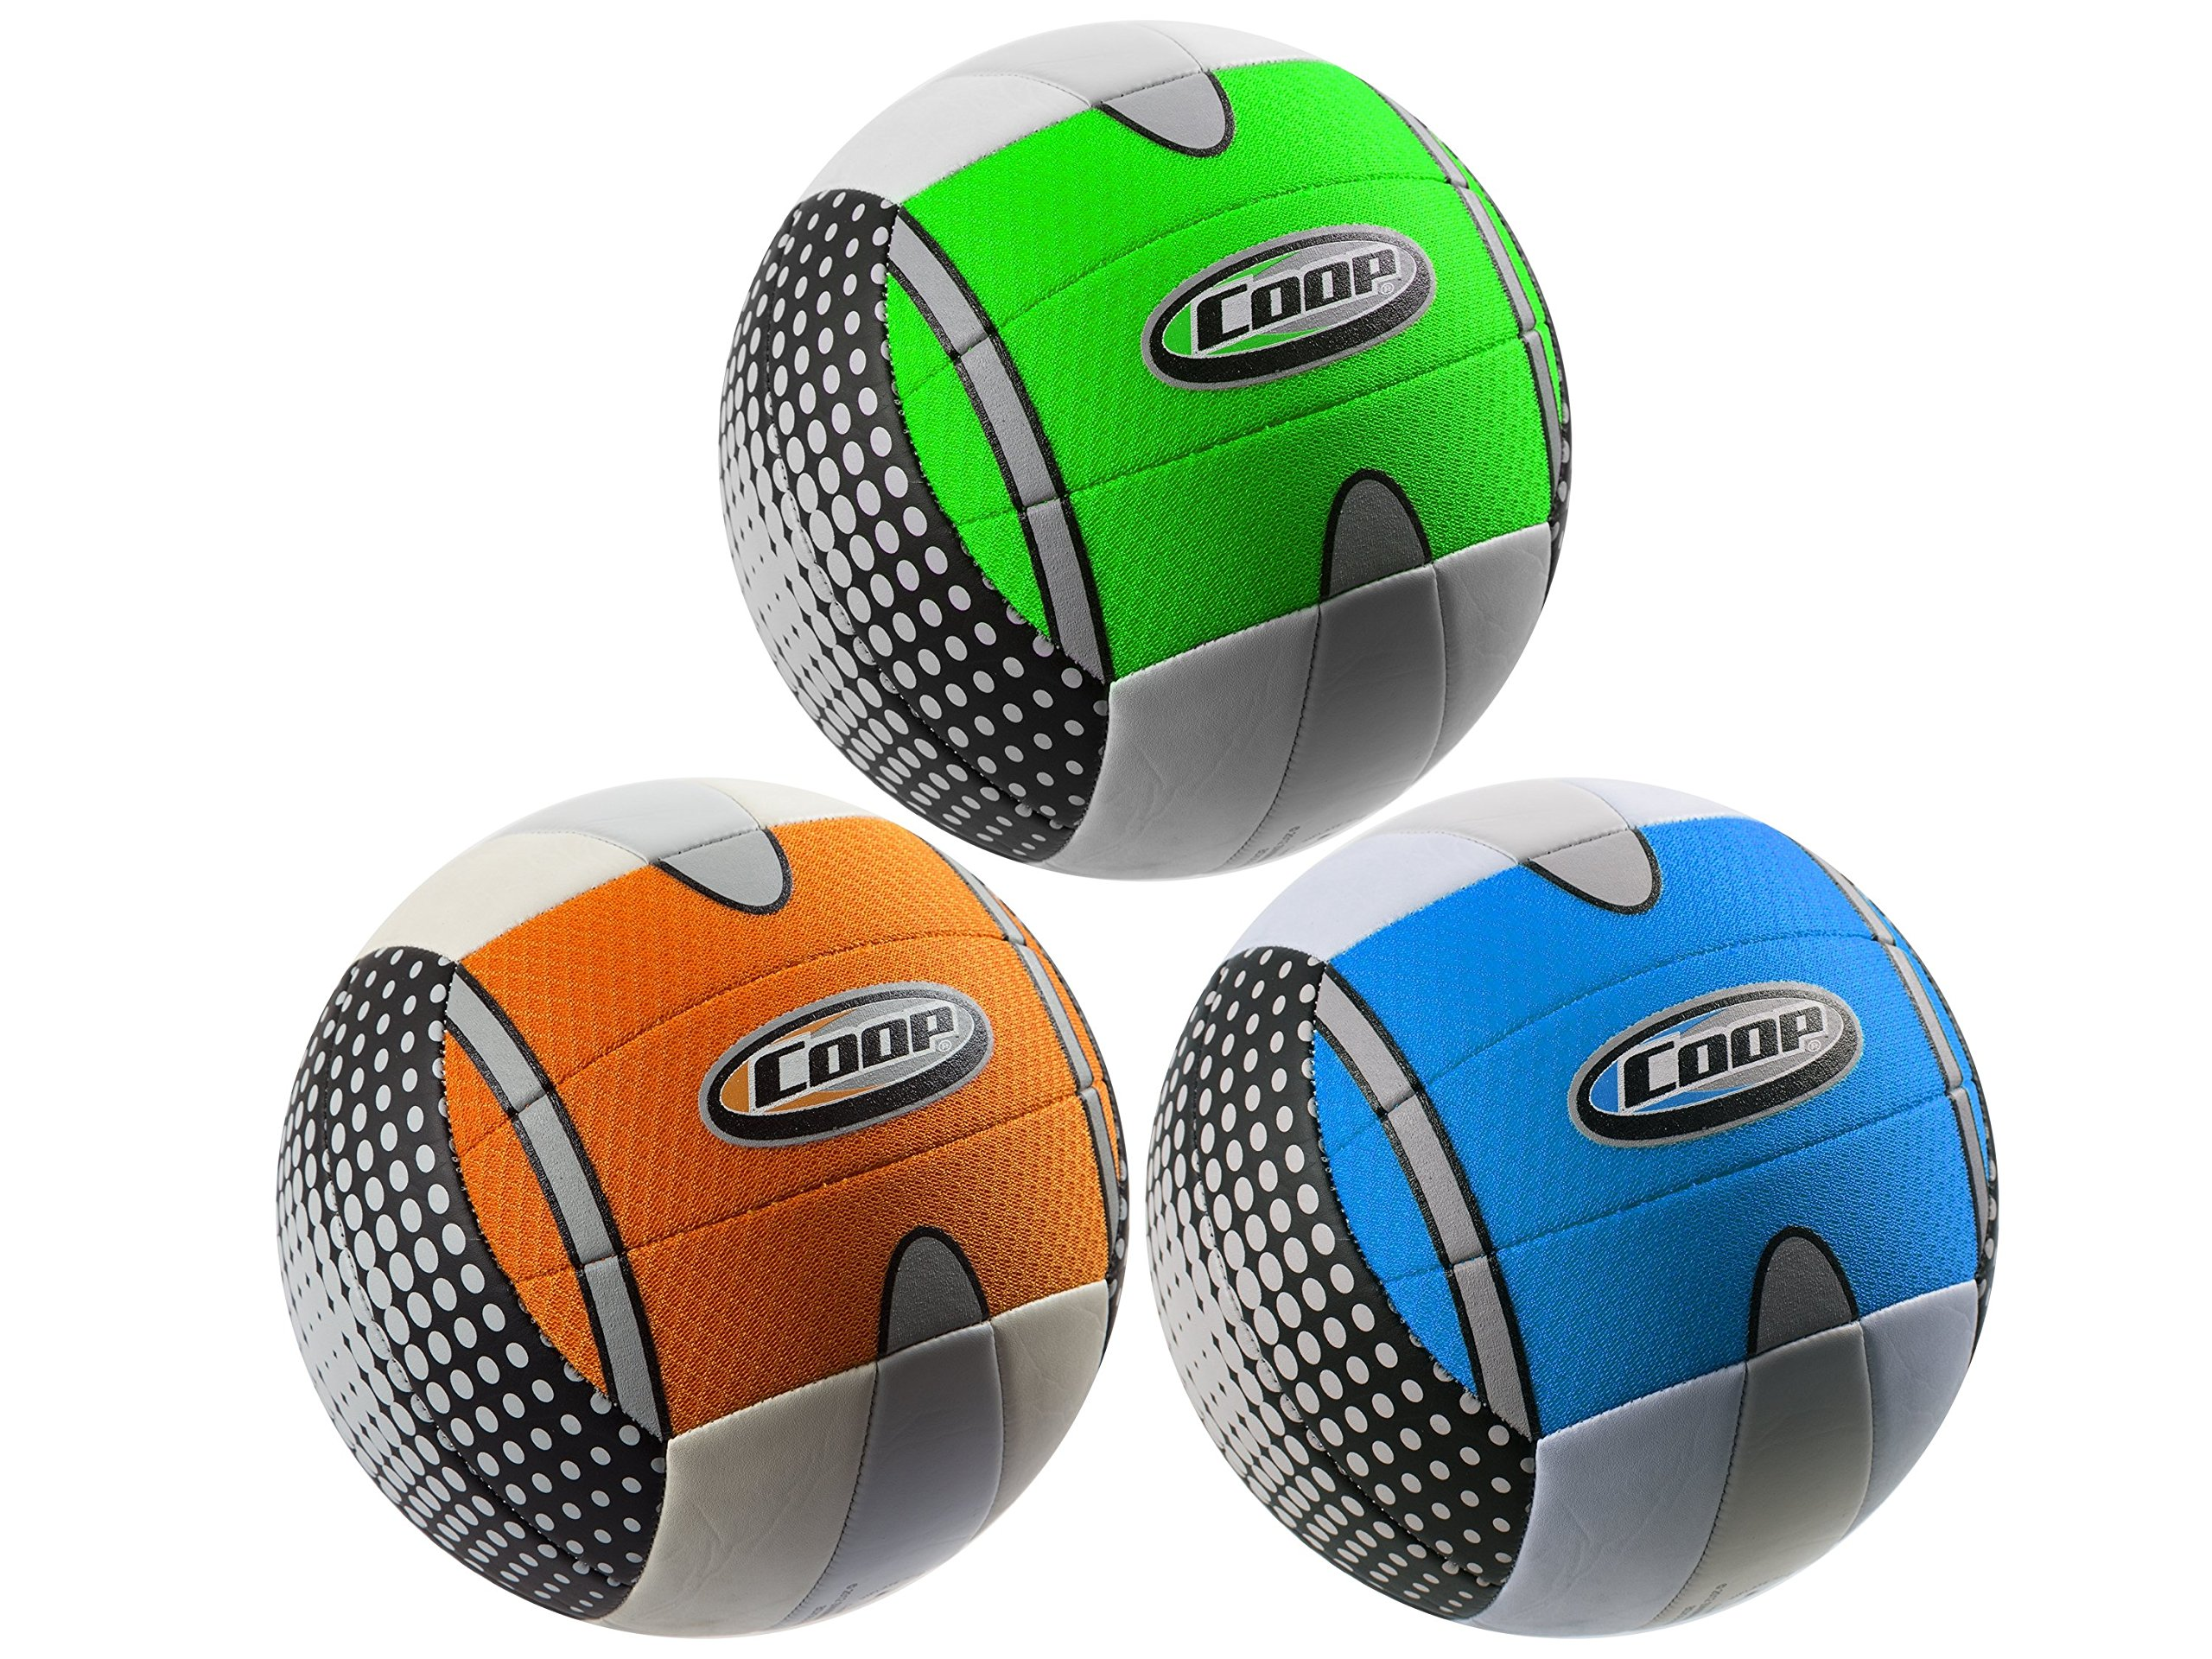 COOP Turbine Volleyball, Colors May Vary